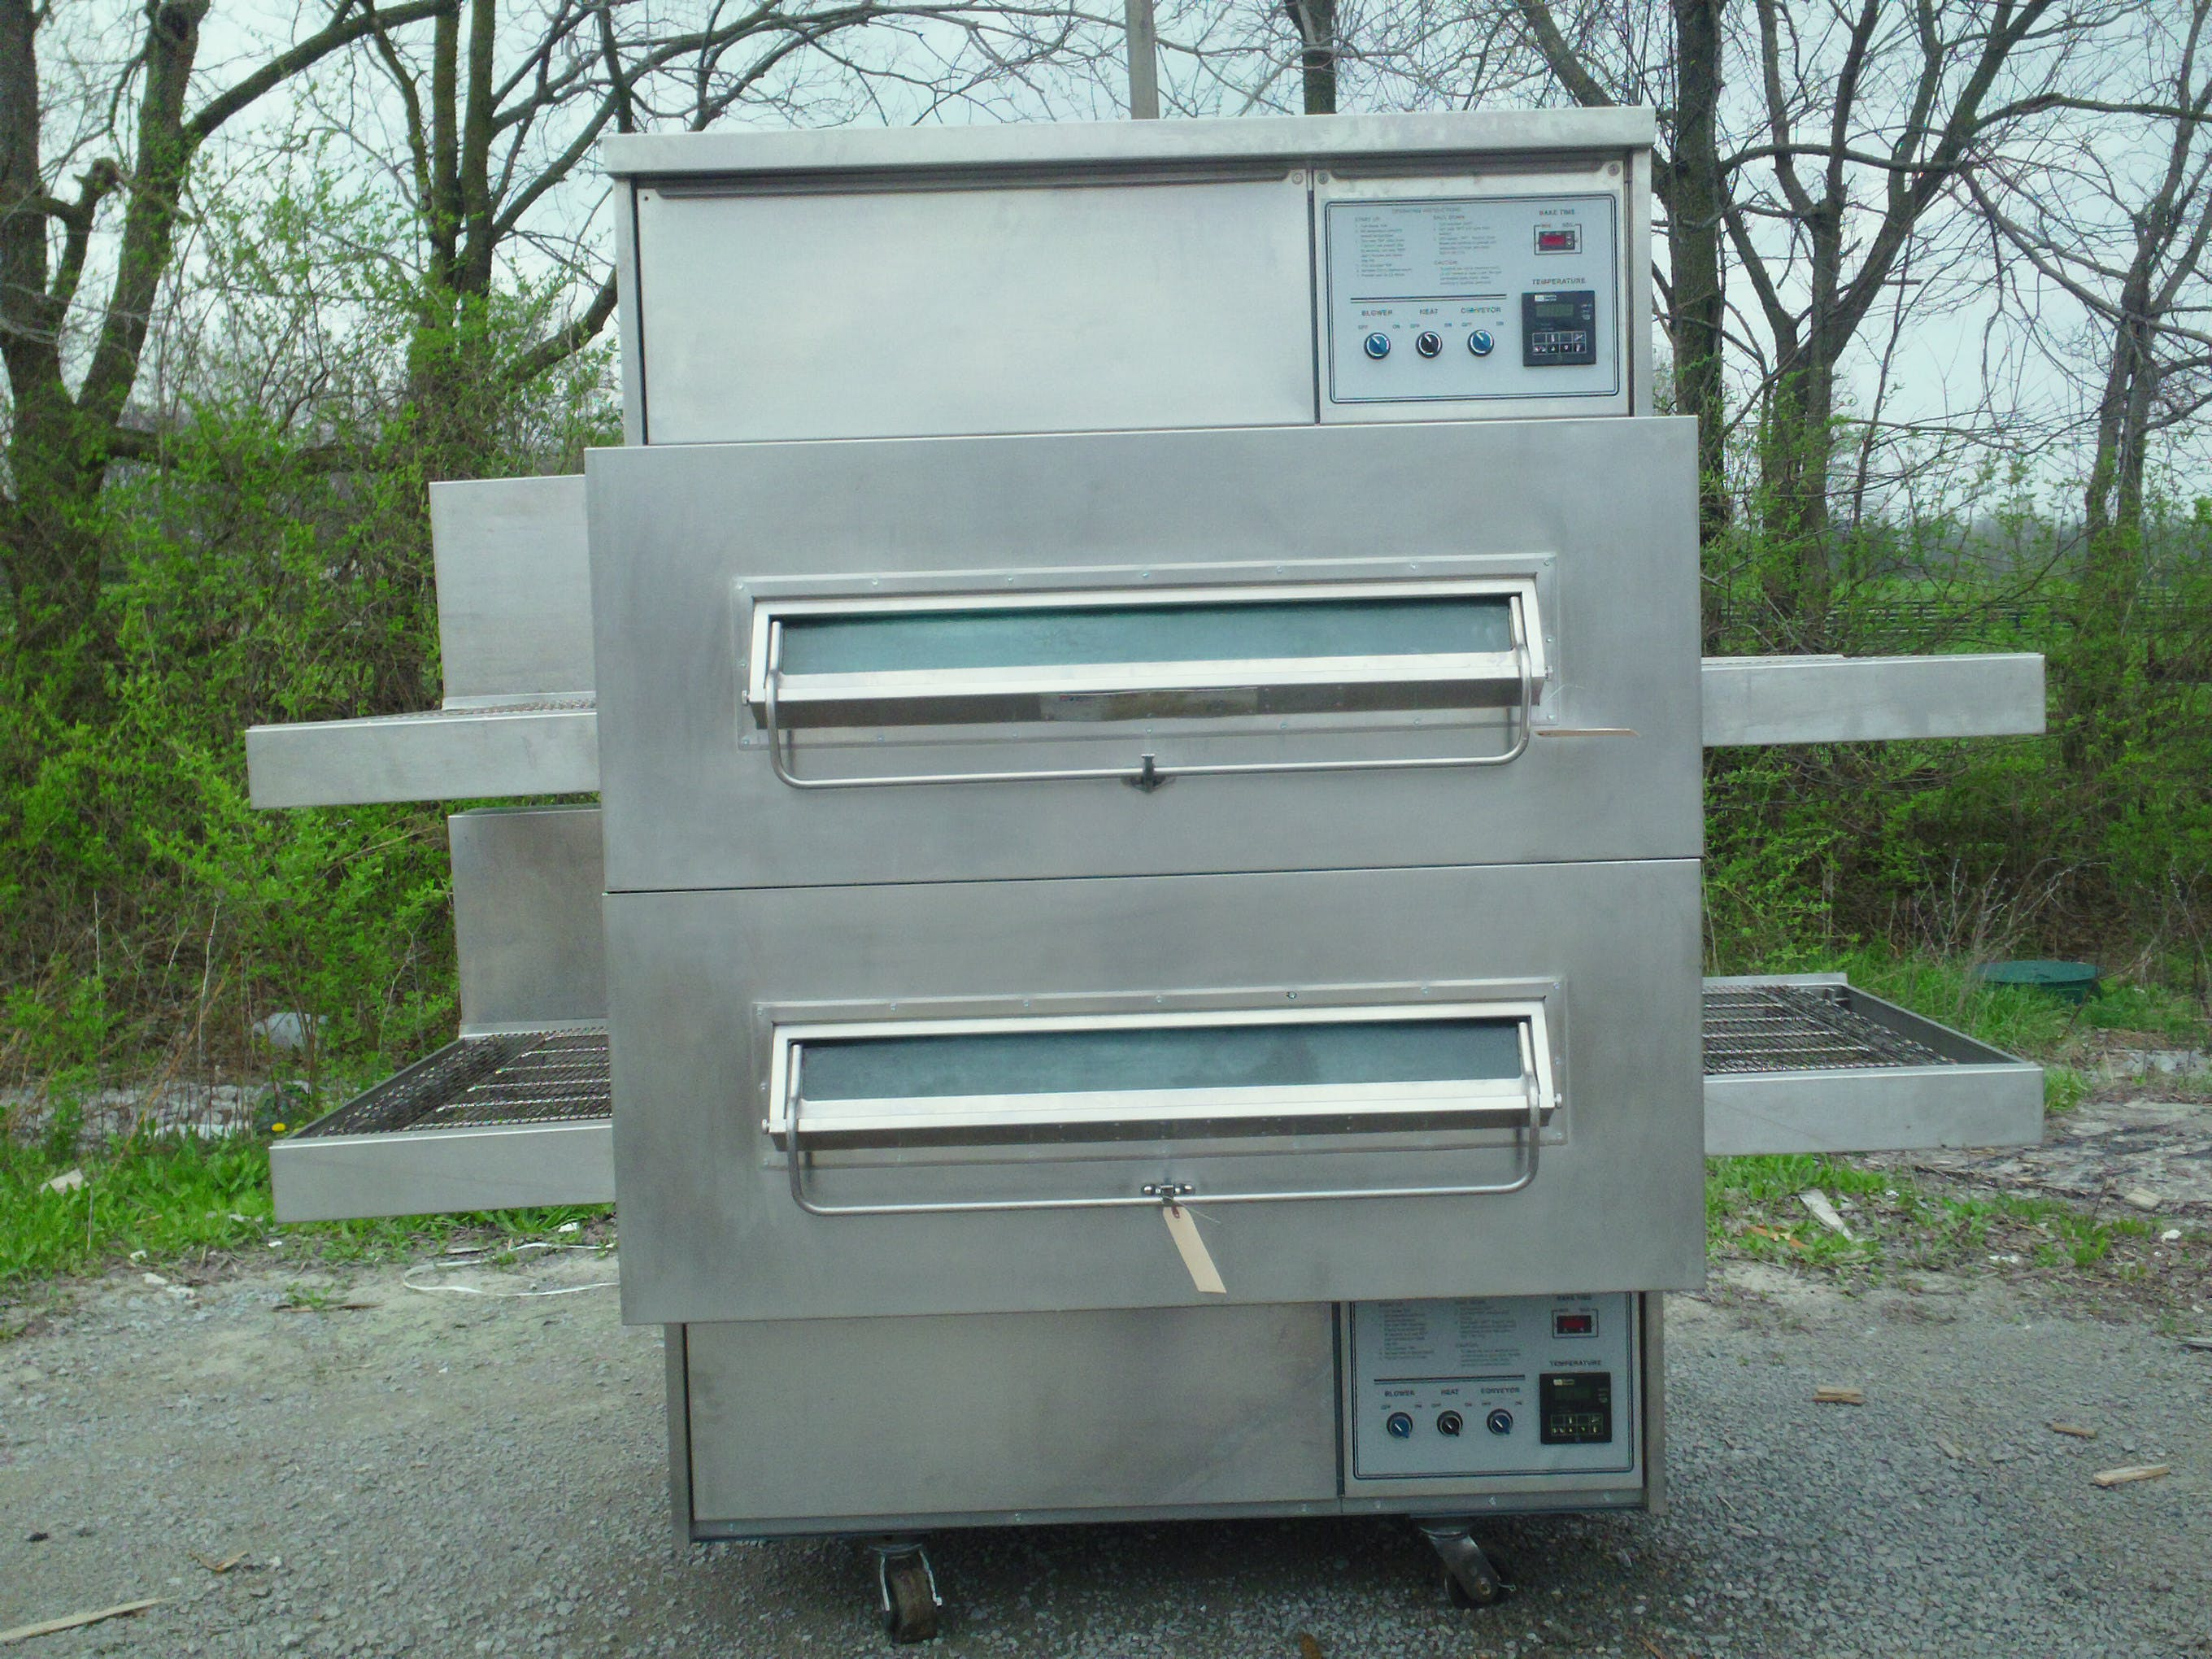 Pre-Owned Middleby Marshall PS-360 Gas Conveyor Ovens Commercial oven sold by pizzaovens.com